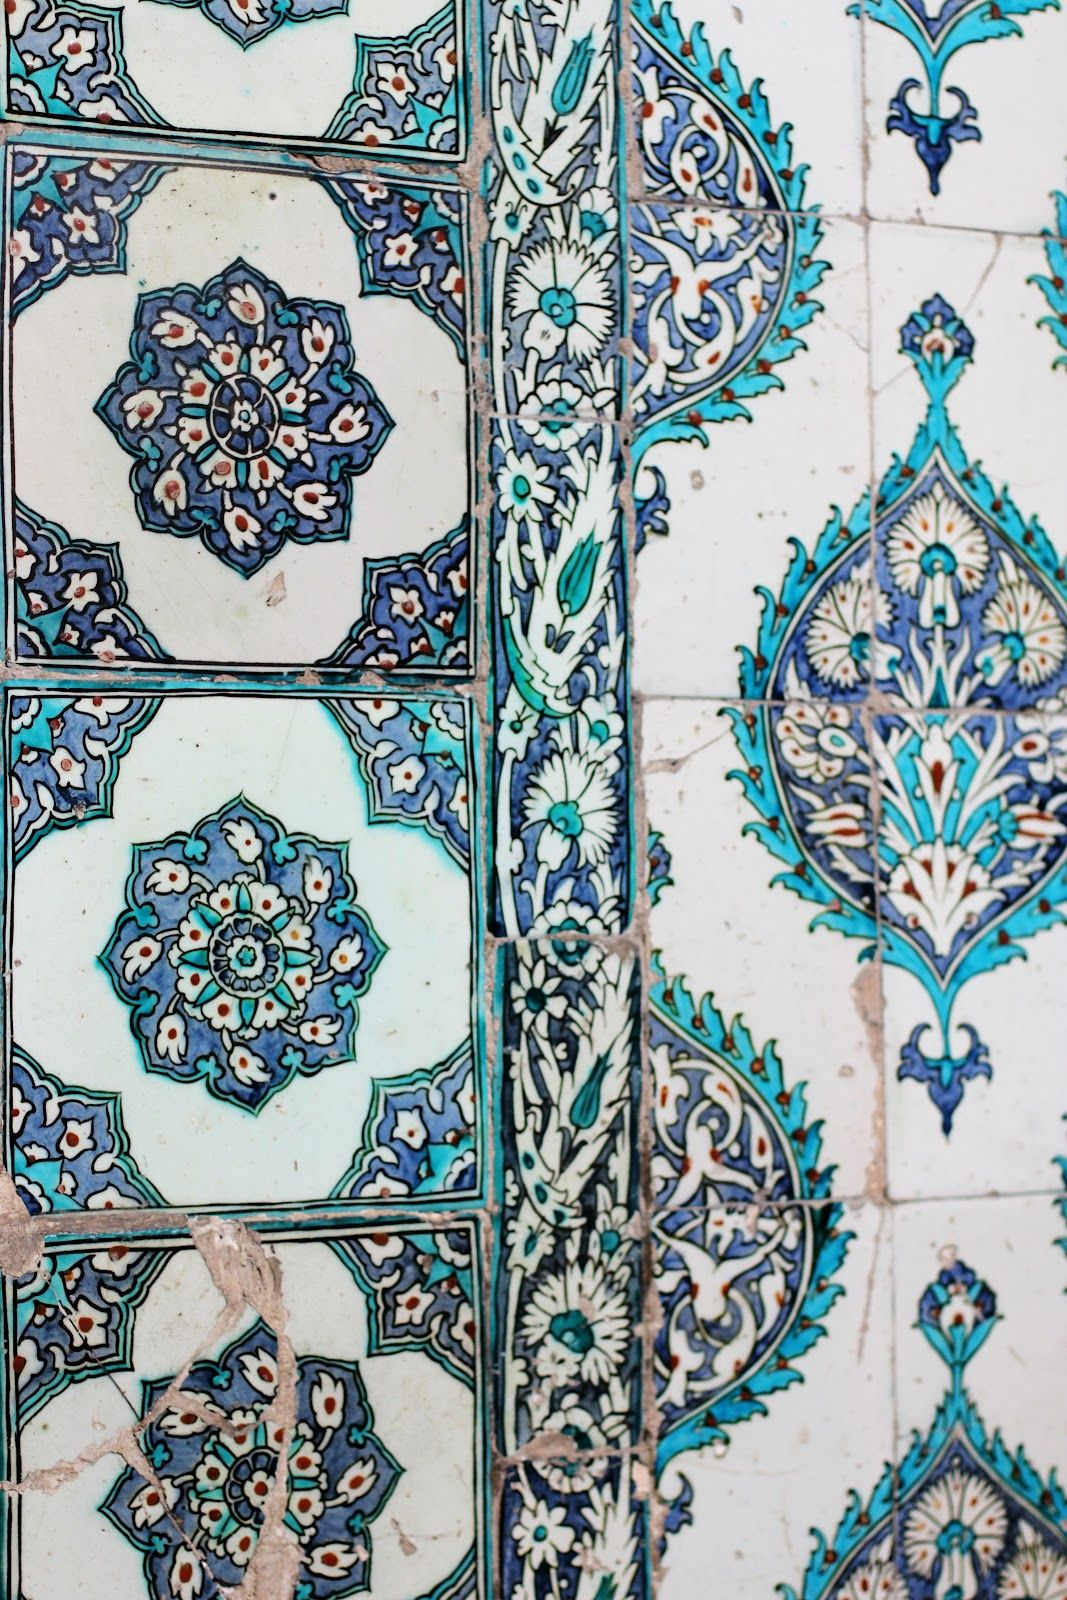 Cobalt blue, turquoise, and white tile in global pattern that almost looks block printed.